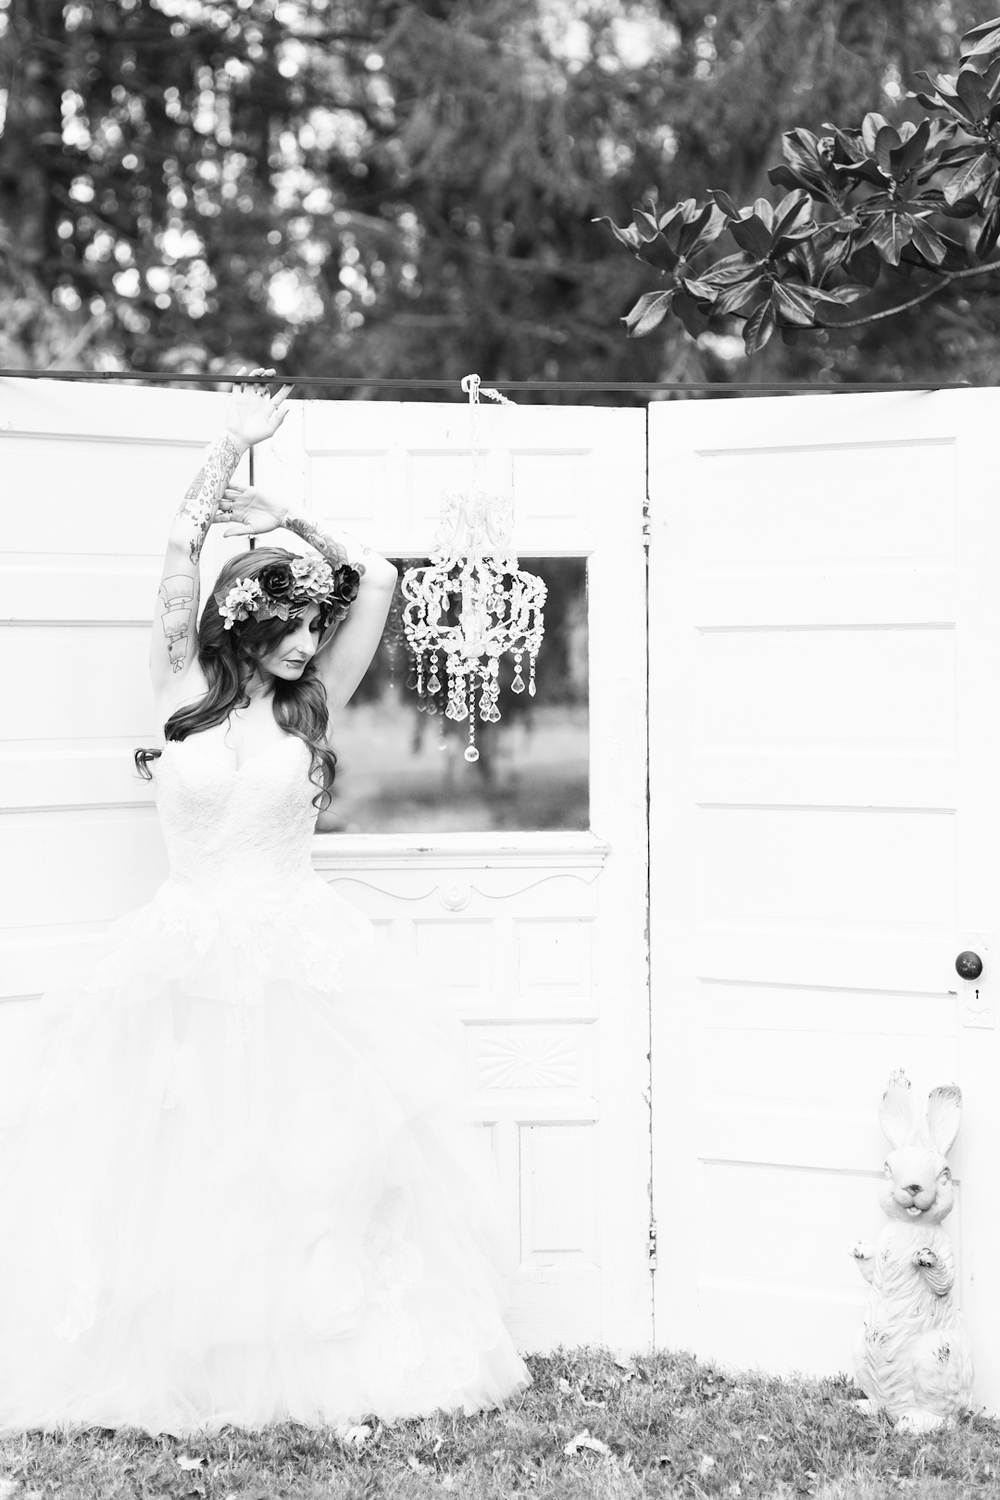 blue-hair-bride-secret-garden-themed-sareh nouri-gown-bridal-session-maryland-brooke-michelle-photography-22-photo.jpg